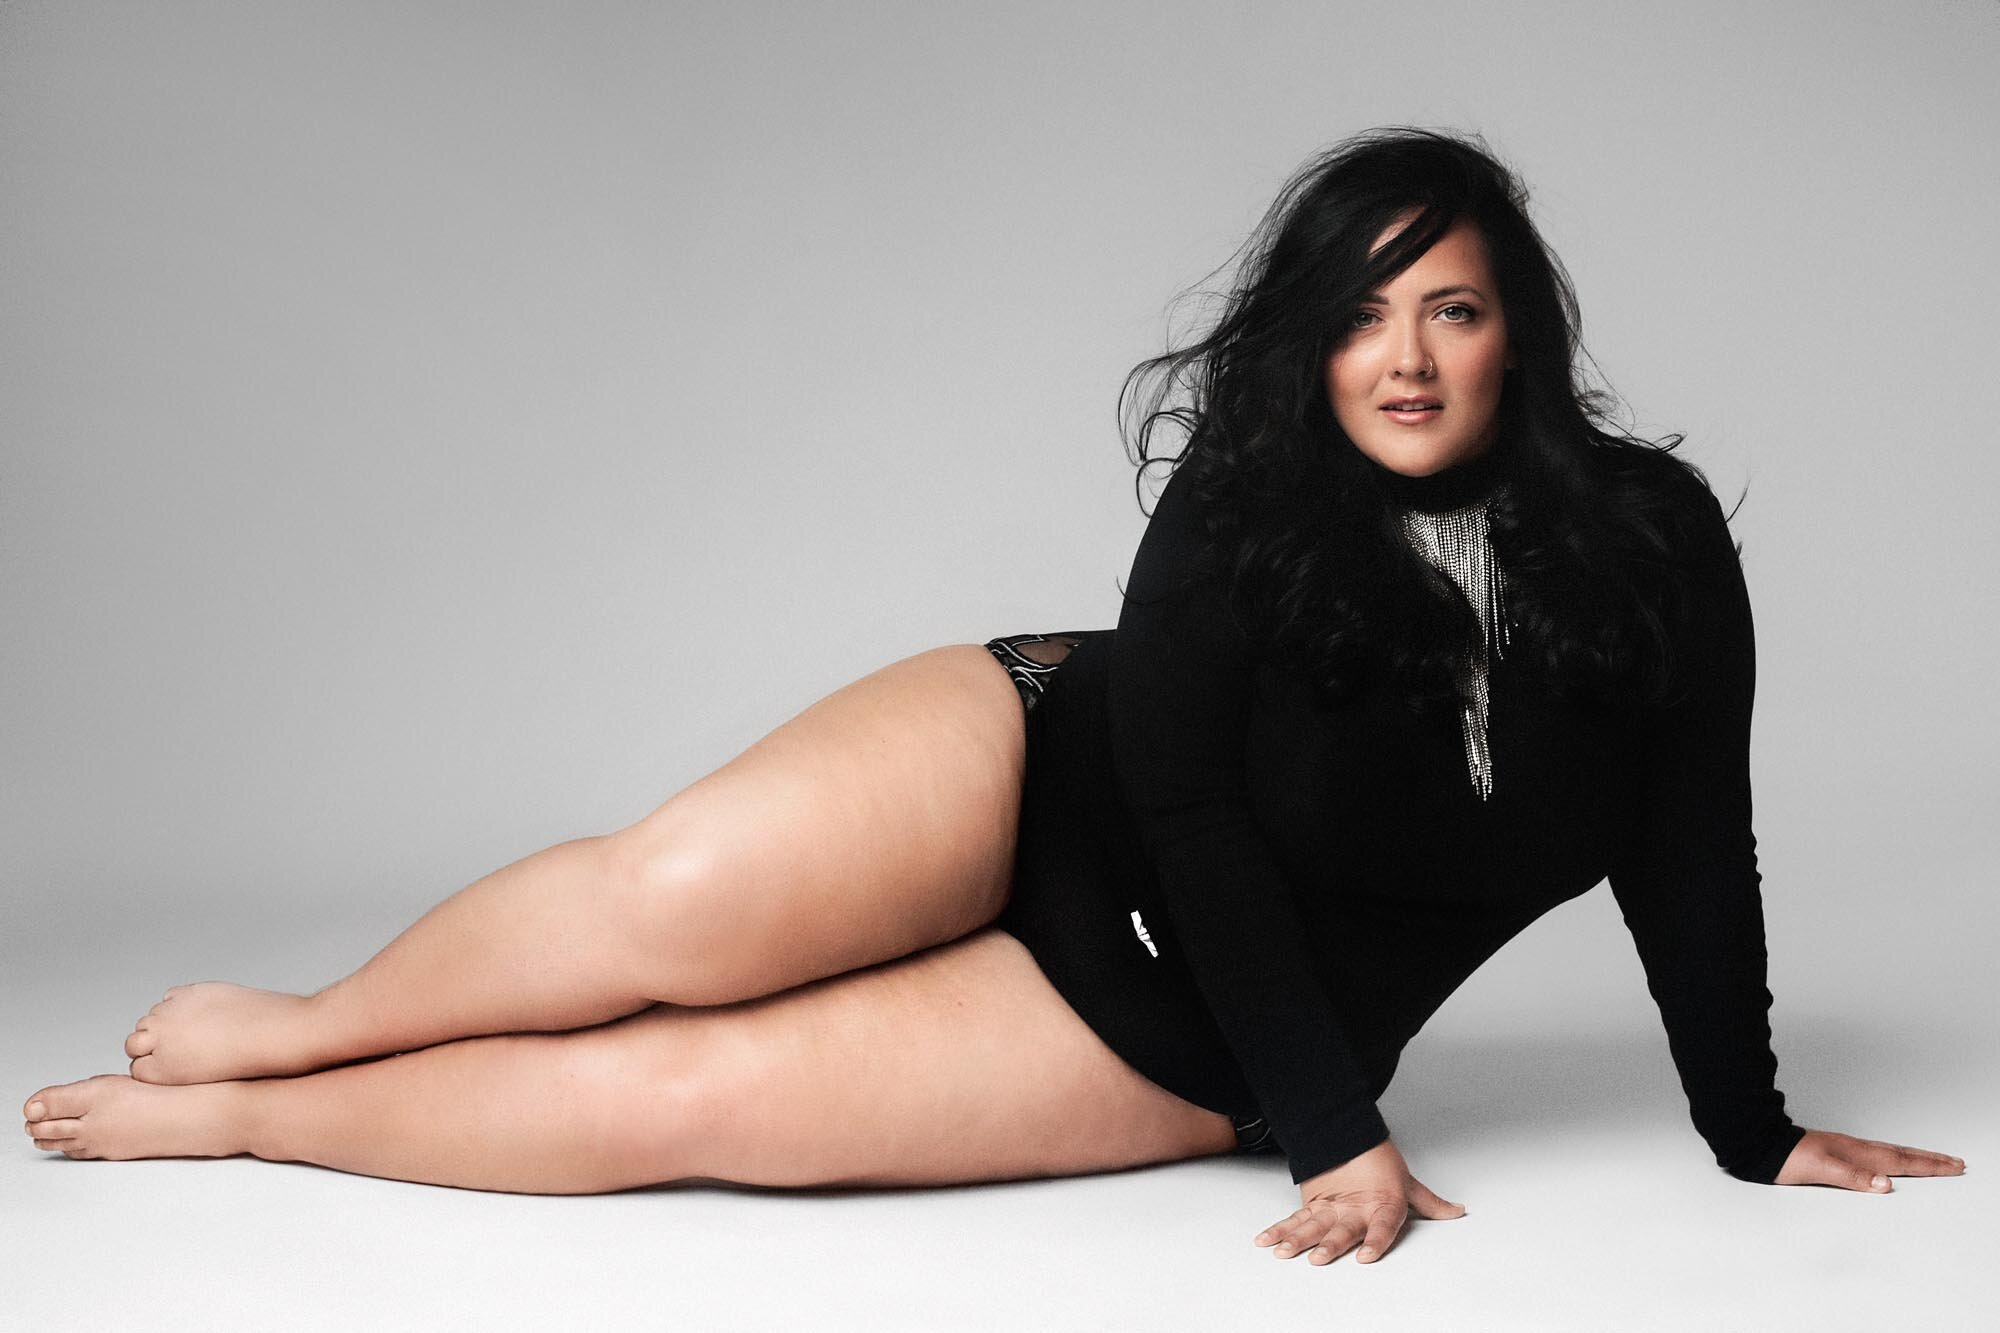 nyc-photographers-plus-size-models-test-10016.jpg